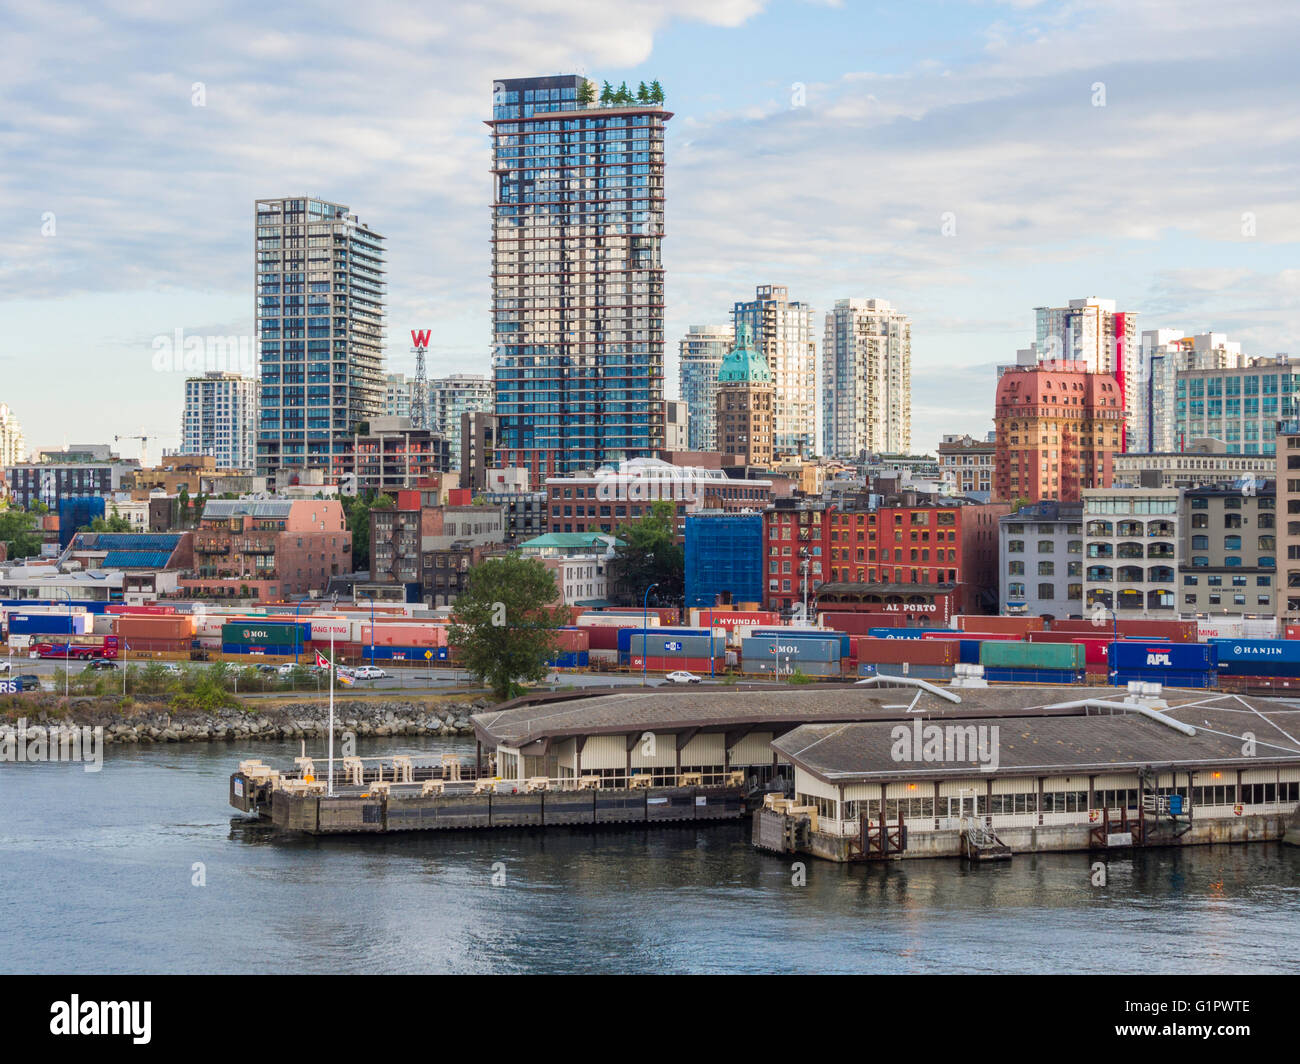 Vancouver's downtown eastside, seen from Vancouver Cruise Terminal at Canada Place.  Woodwards 'W' and domed 'Sun' Stock Photo